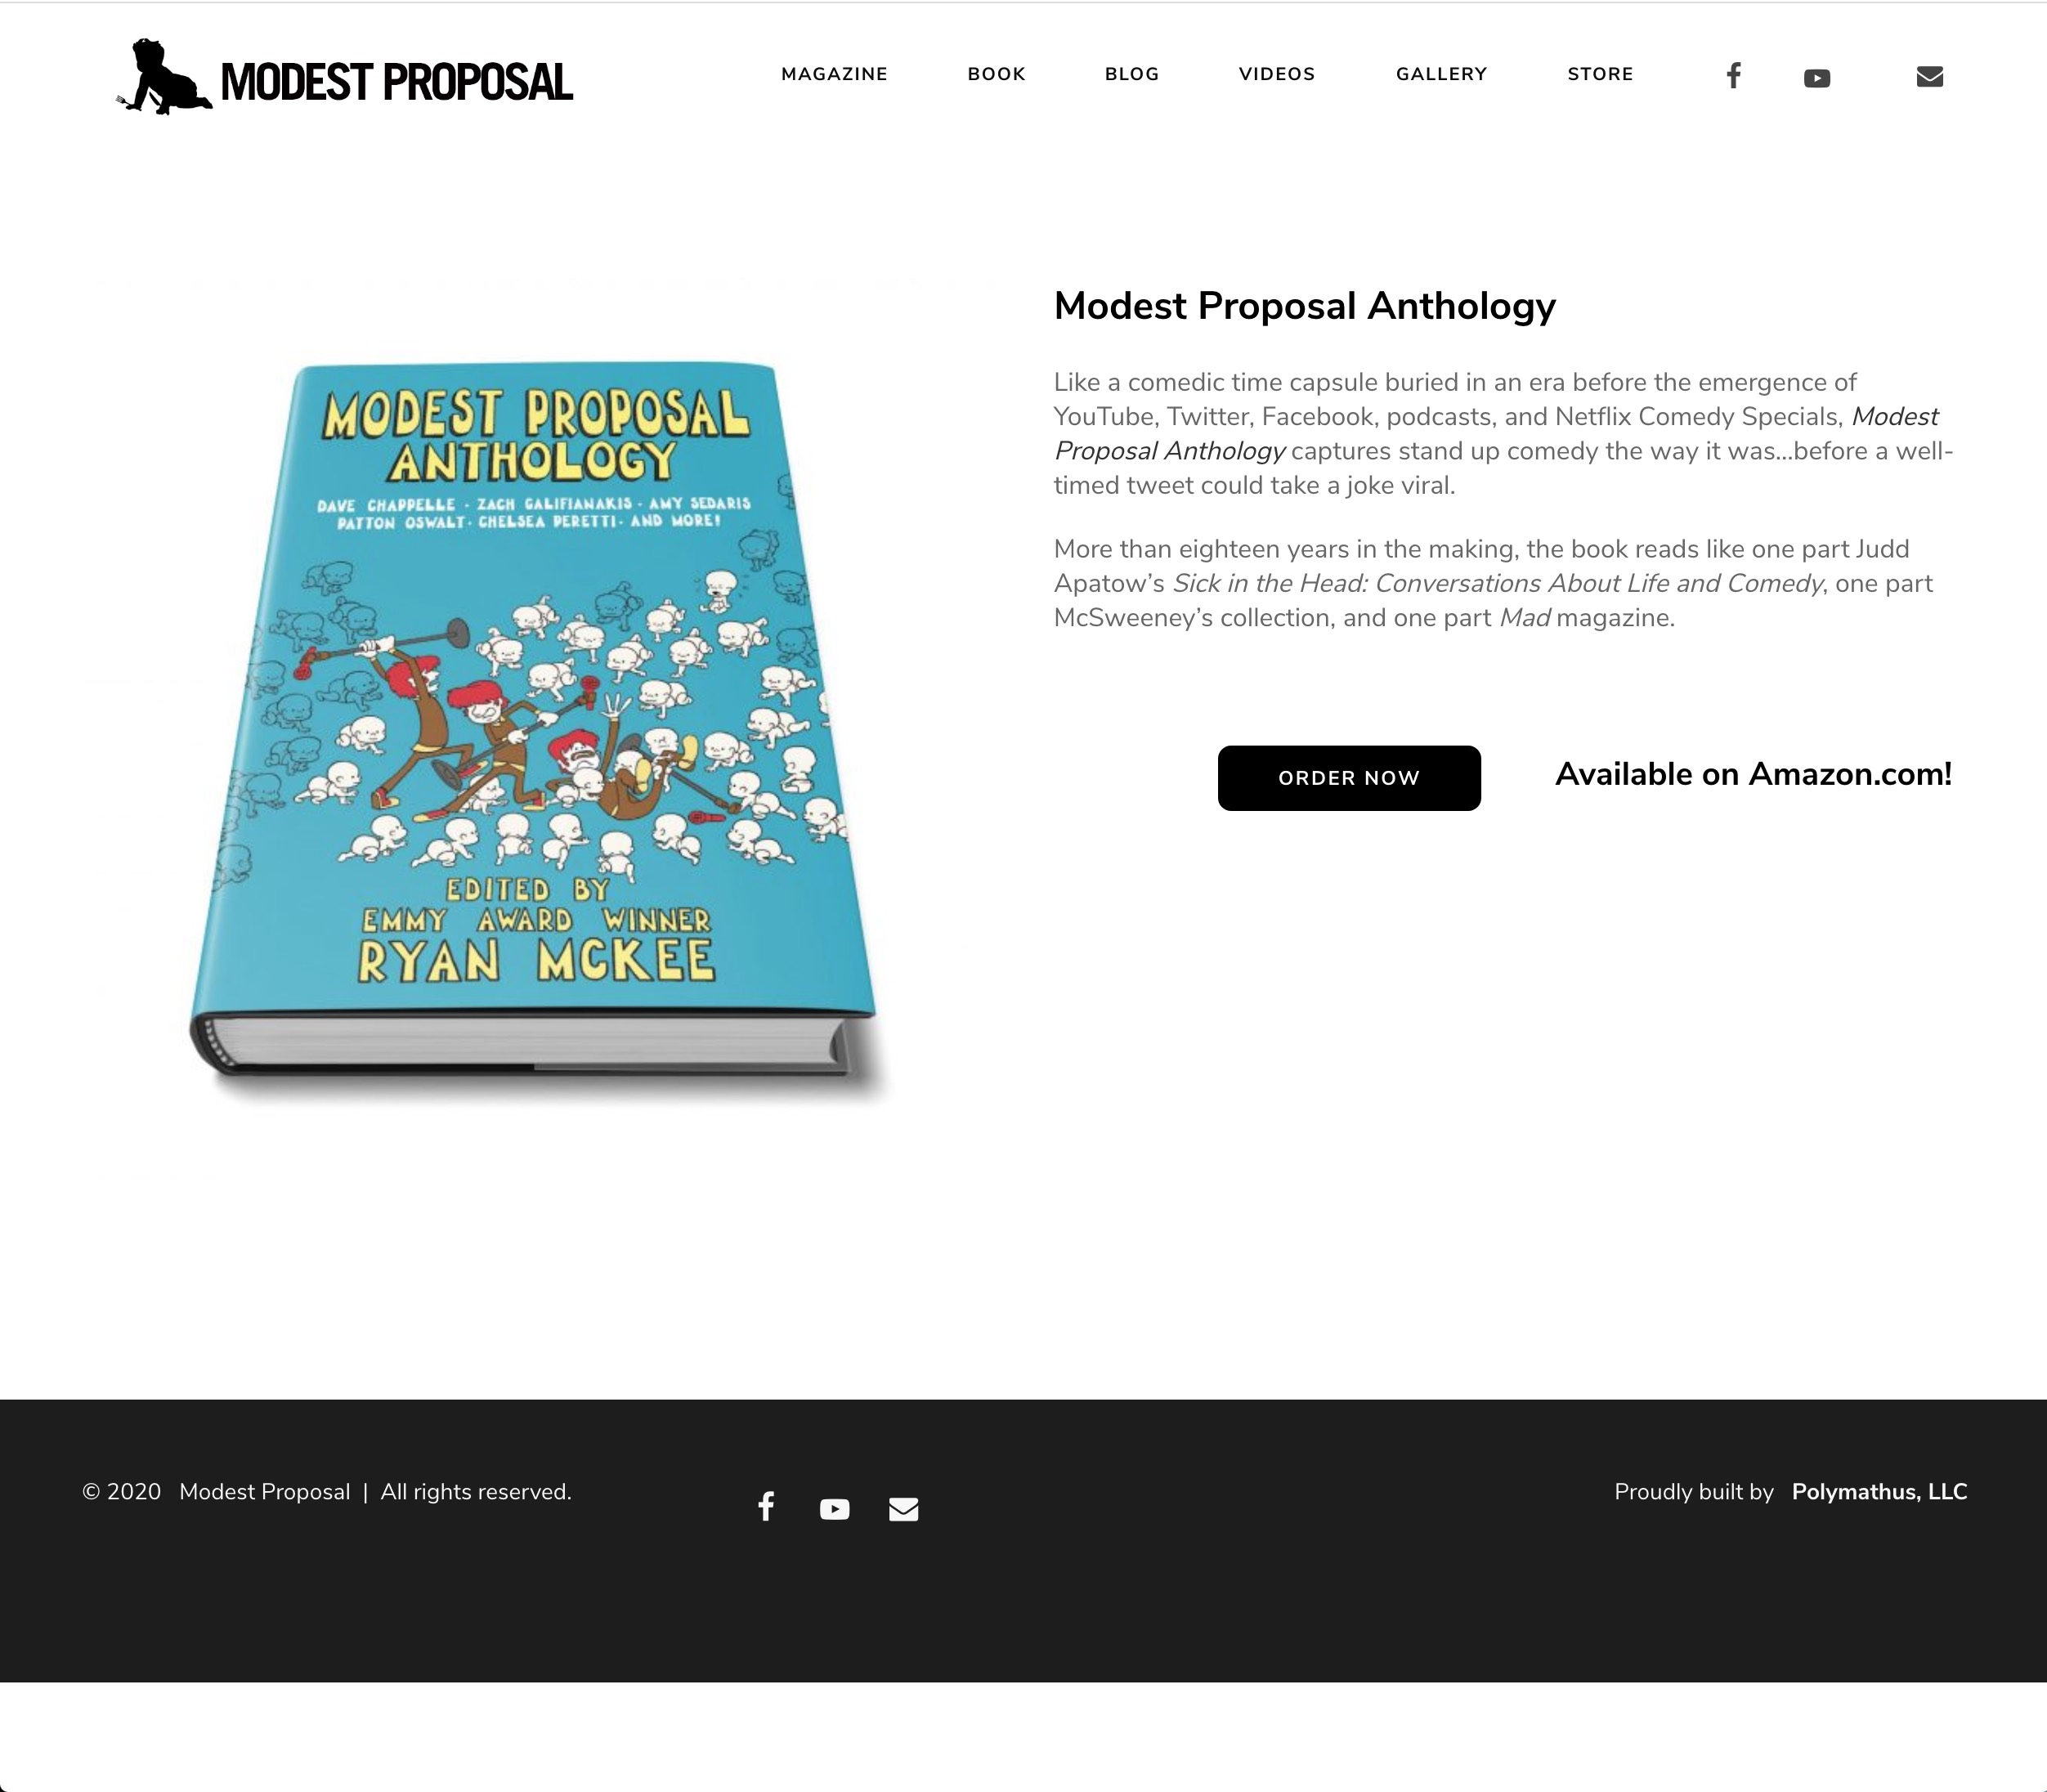 Modest Proposal Anthology